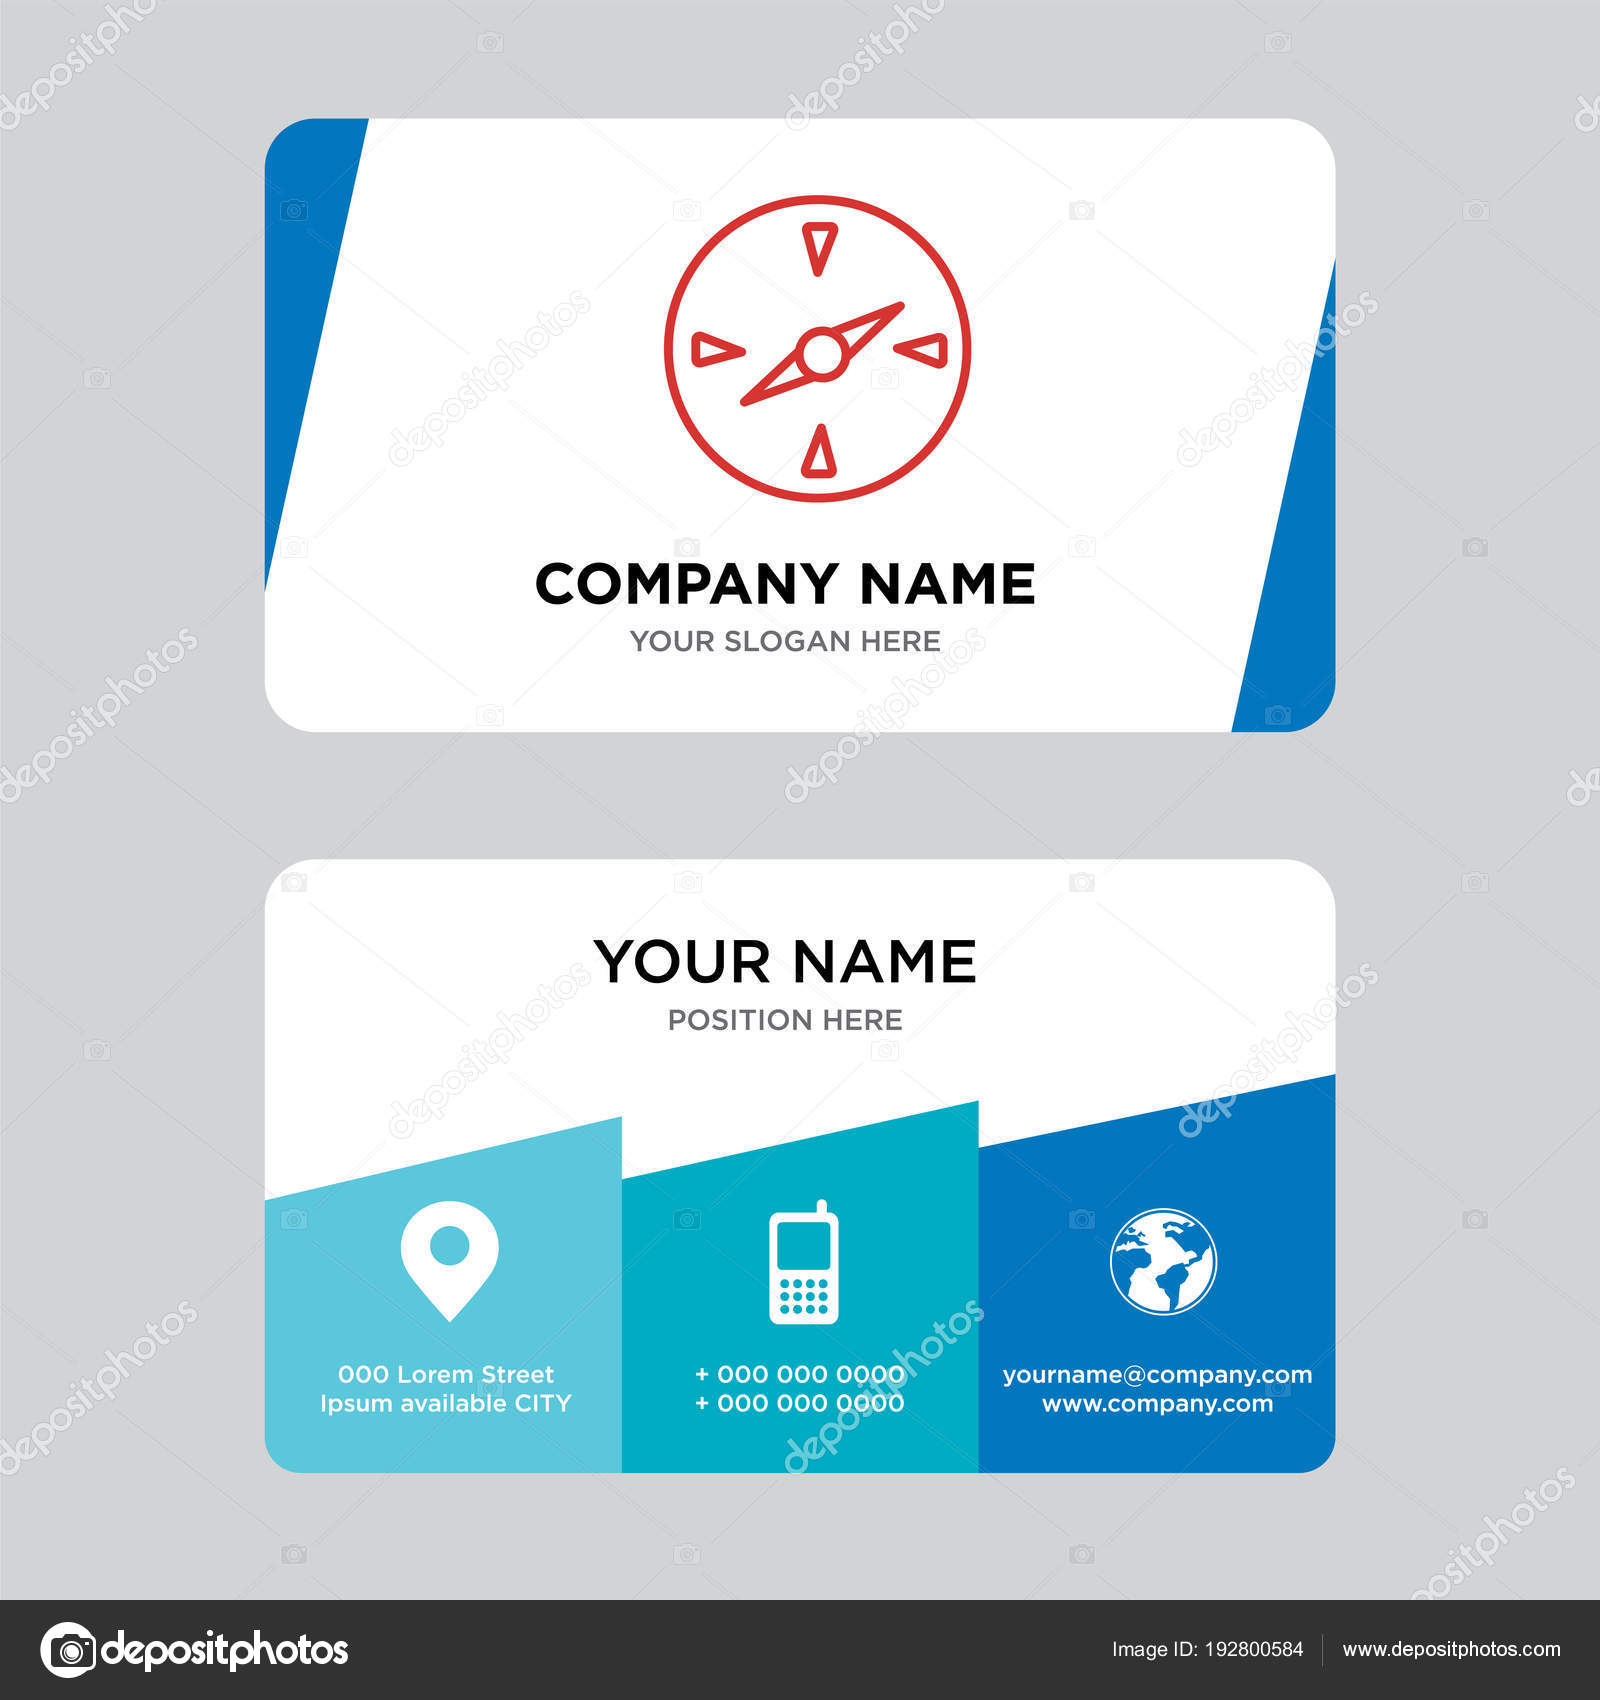 Compass Business Card Design Template Stock Vector